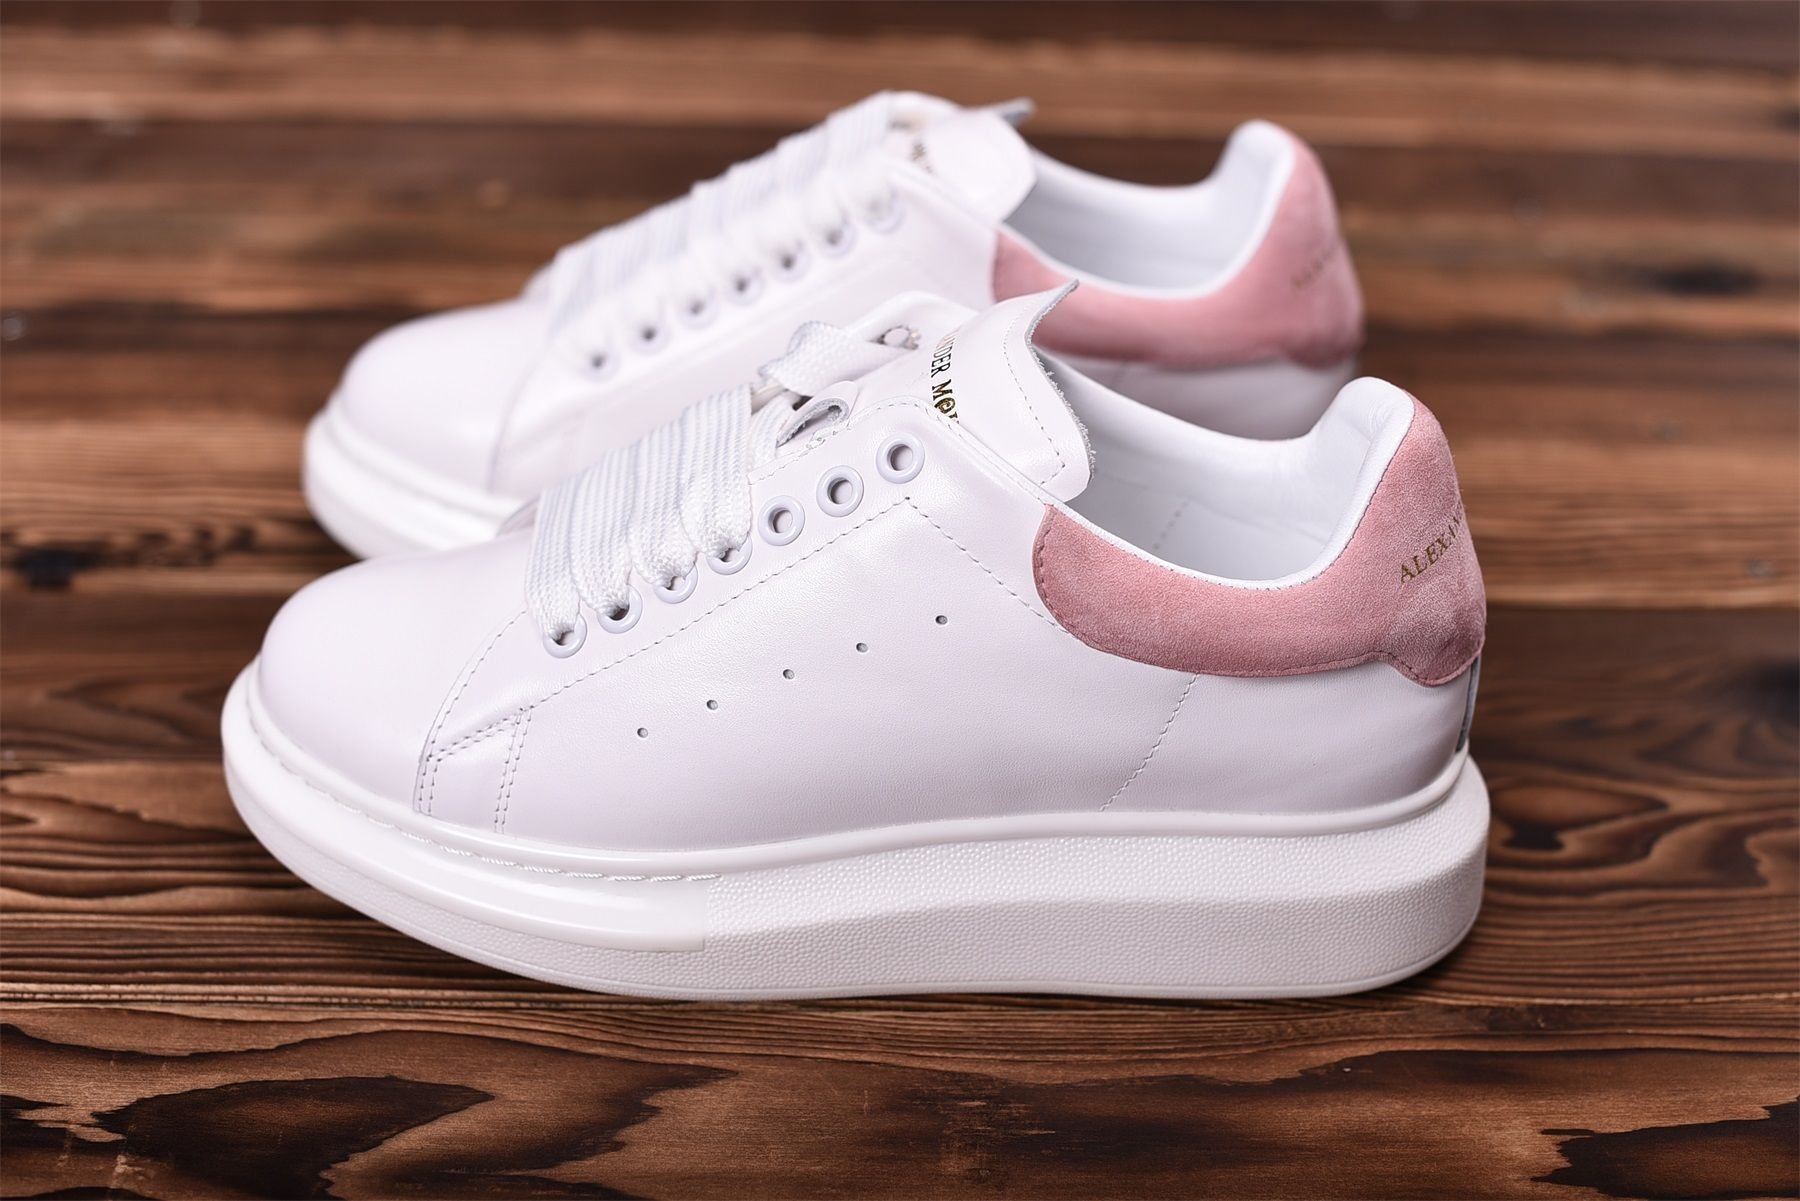 Alexander Mcqueen Oversized Sneaker White Pink Alexander Mcqueen Oversized Sneakers Mcqueen Sneakers Stan Smith Shoes